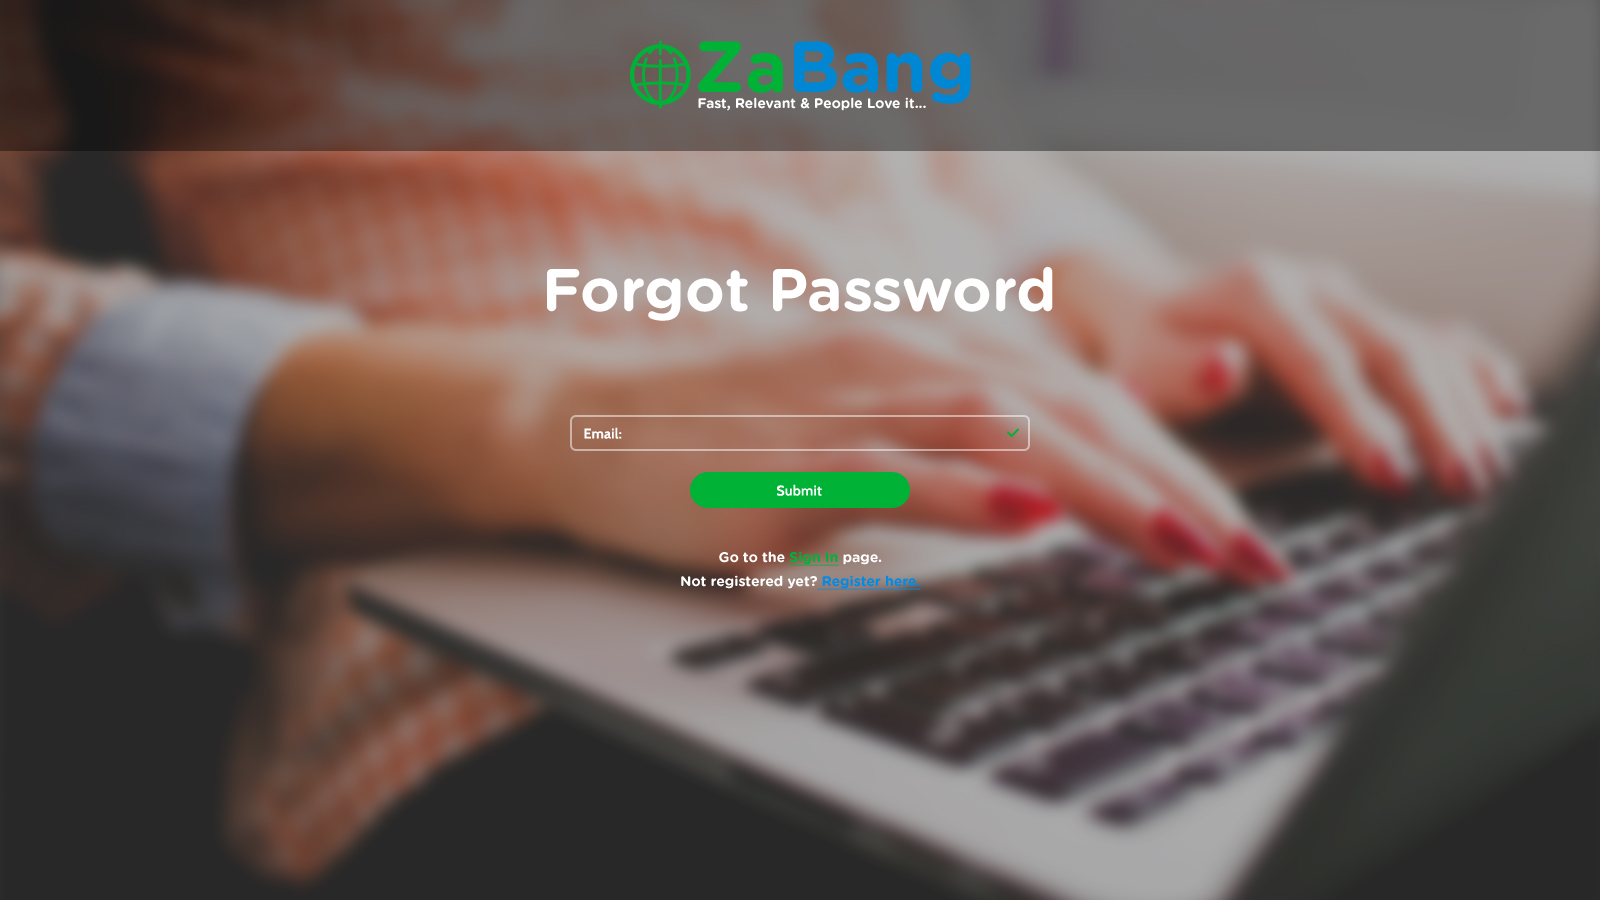 4.Forgot-Password